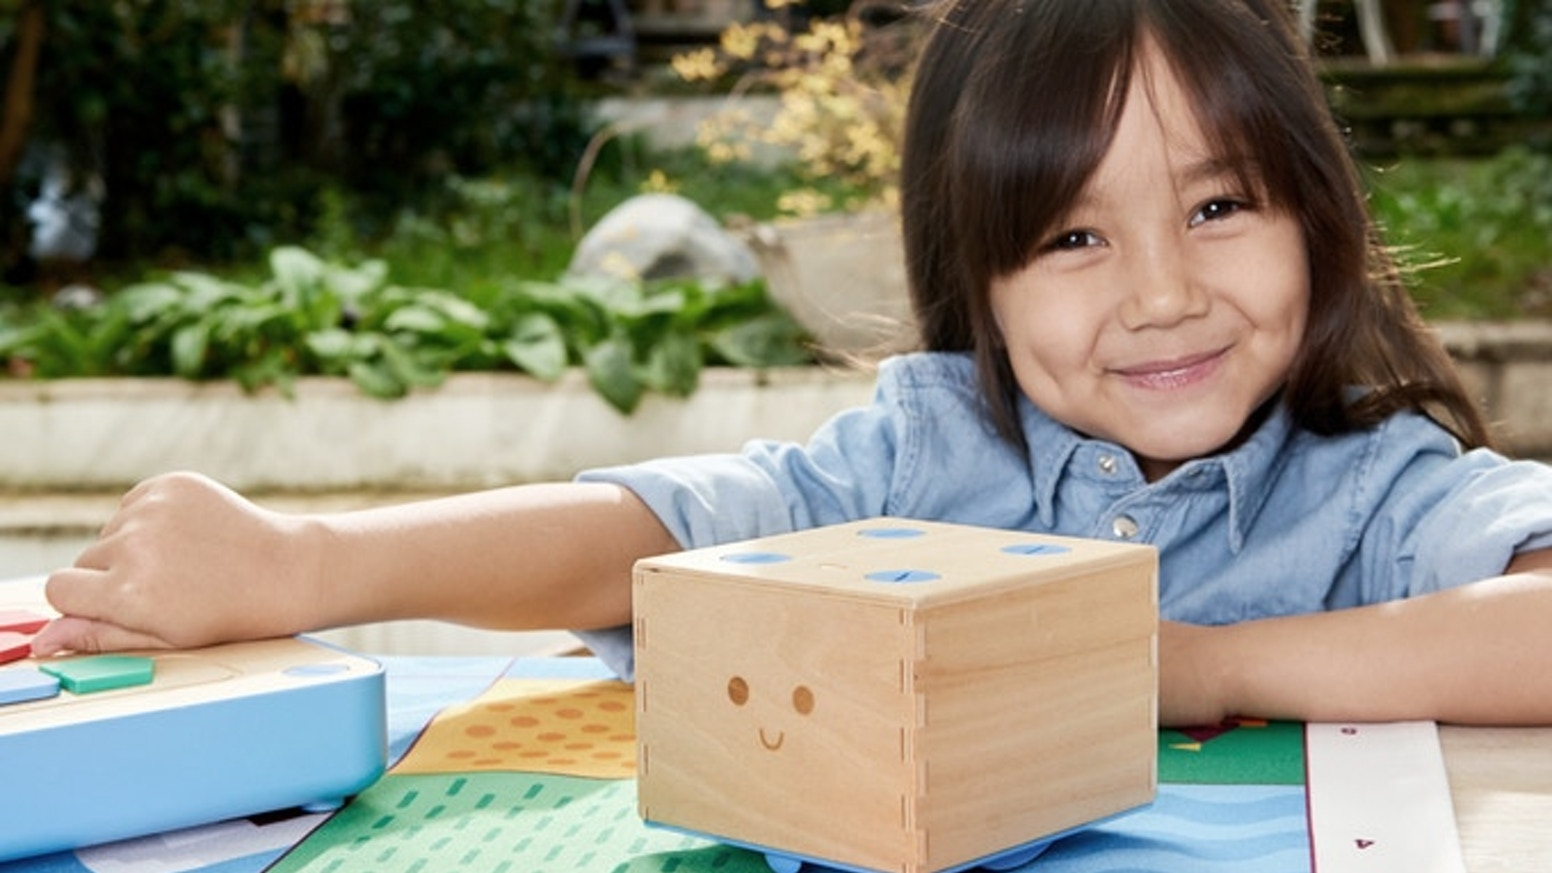 Cubetto Super Series Coding Adventures In The Savannah By Primo Mao Mini Market Playset Pink A Hands On Programming Language For Girls And Boys Aged 3 Up Montessori